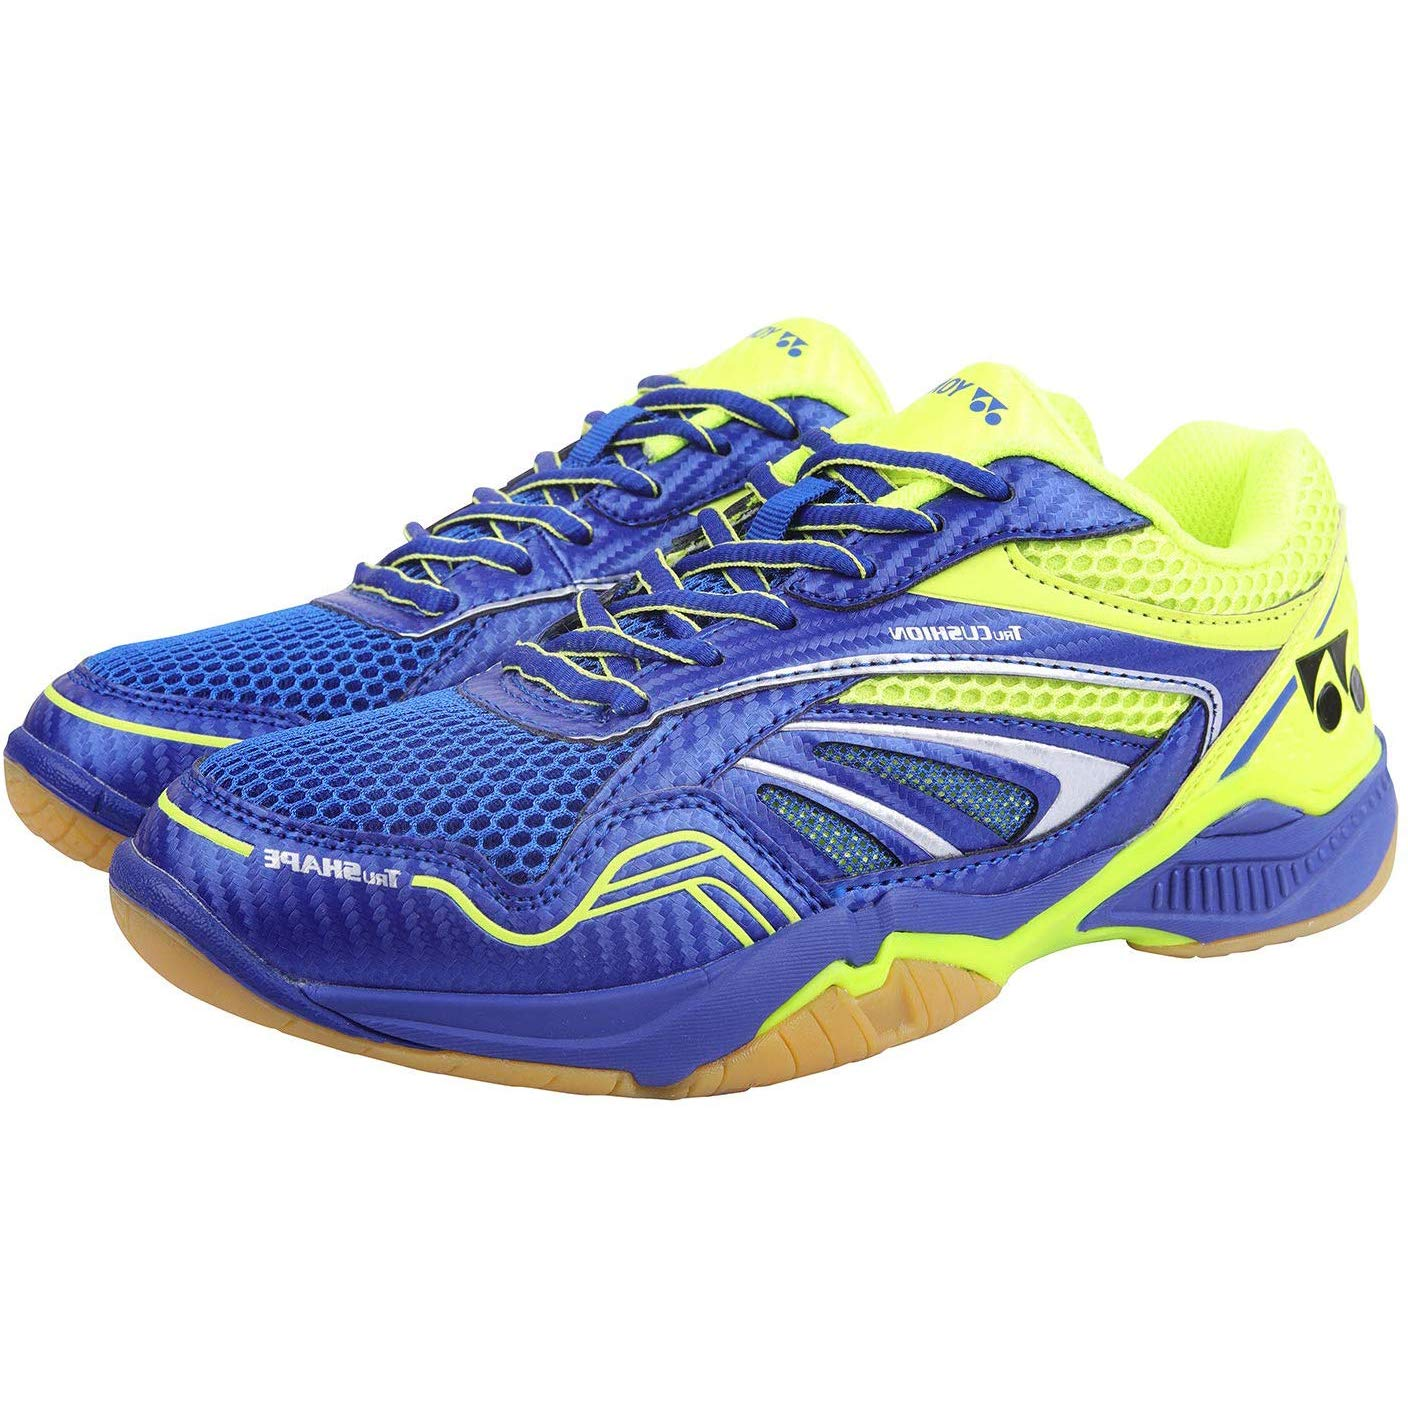 Yonex C-Ace Light Badminton Non Marking Shoes, Blue/Neon/Lime Green - 6 UK (B07ZLRZ5JT) Amazon Price History, Amazon Price Tracker